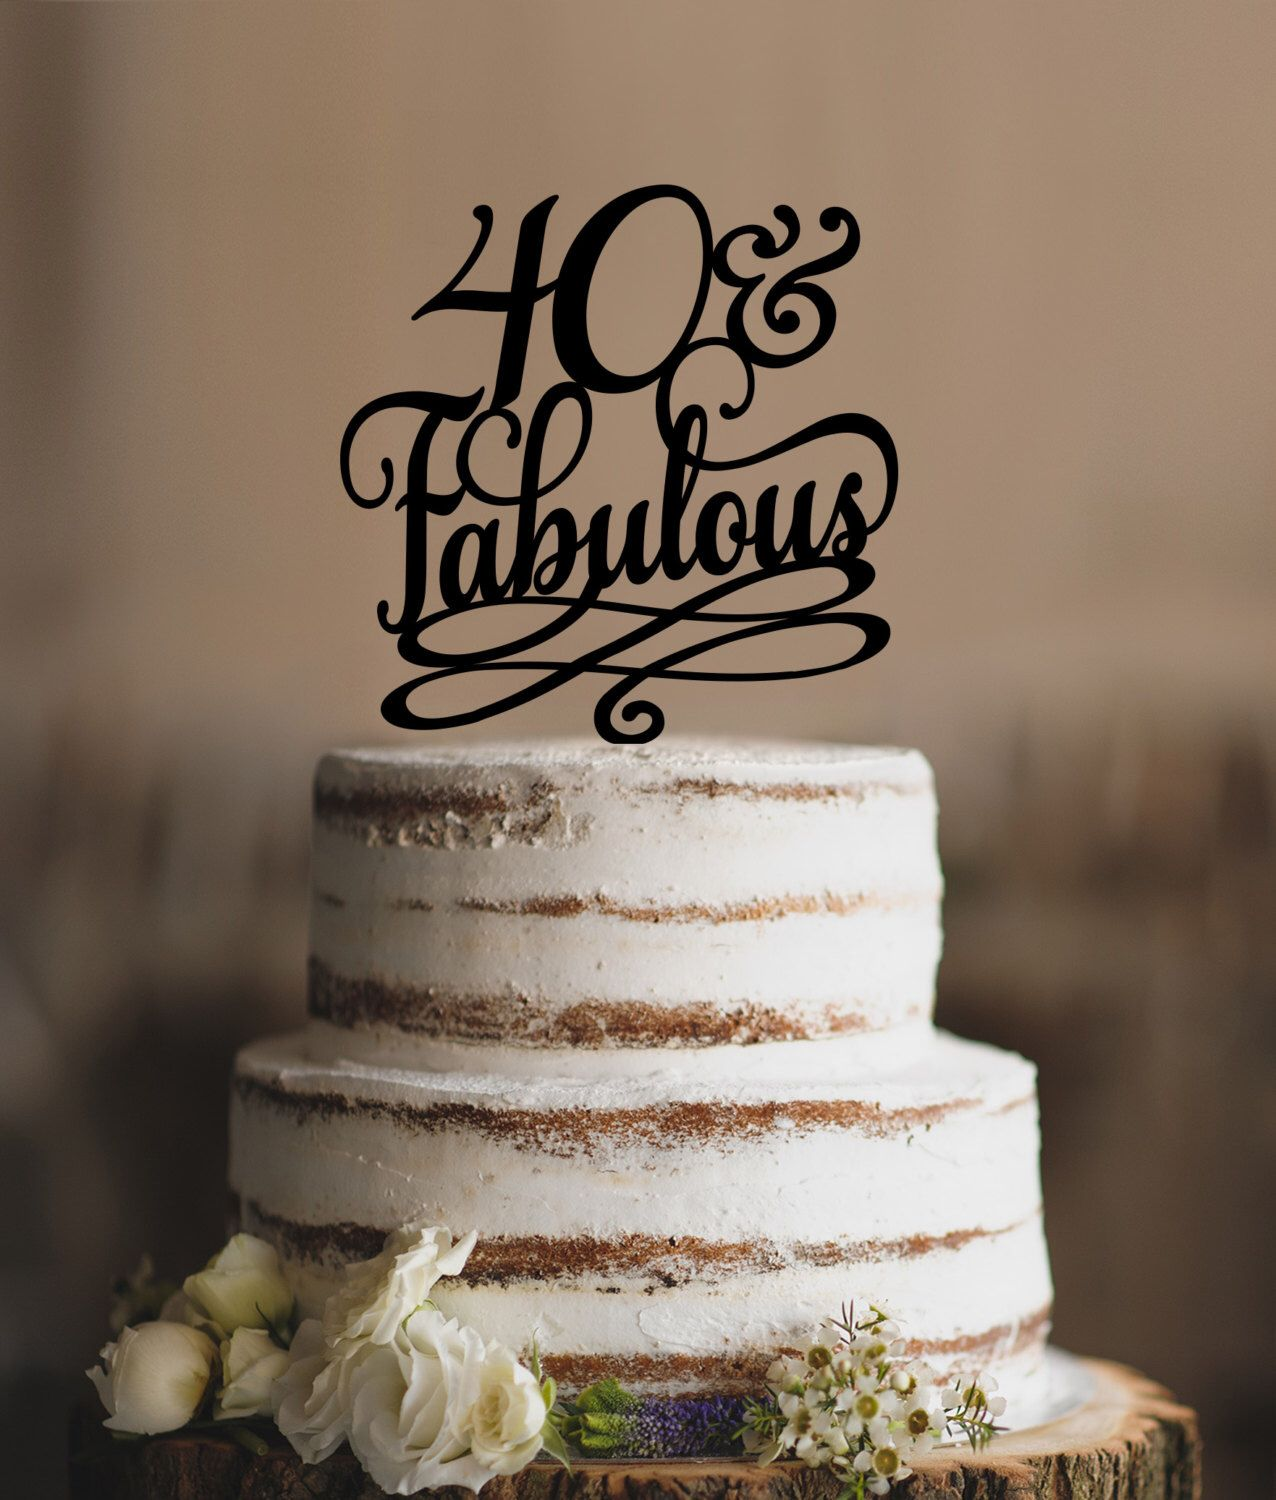 calligraphy script number topper cake topper 40 elegant custom cake topper number 60 topper number birthday cake topper Grandmas 90th,Simply 50th cake topper personalized gold cake topper